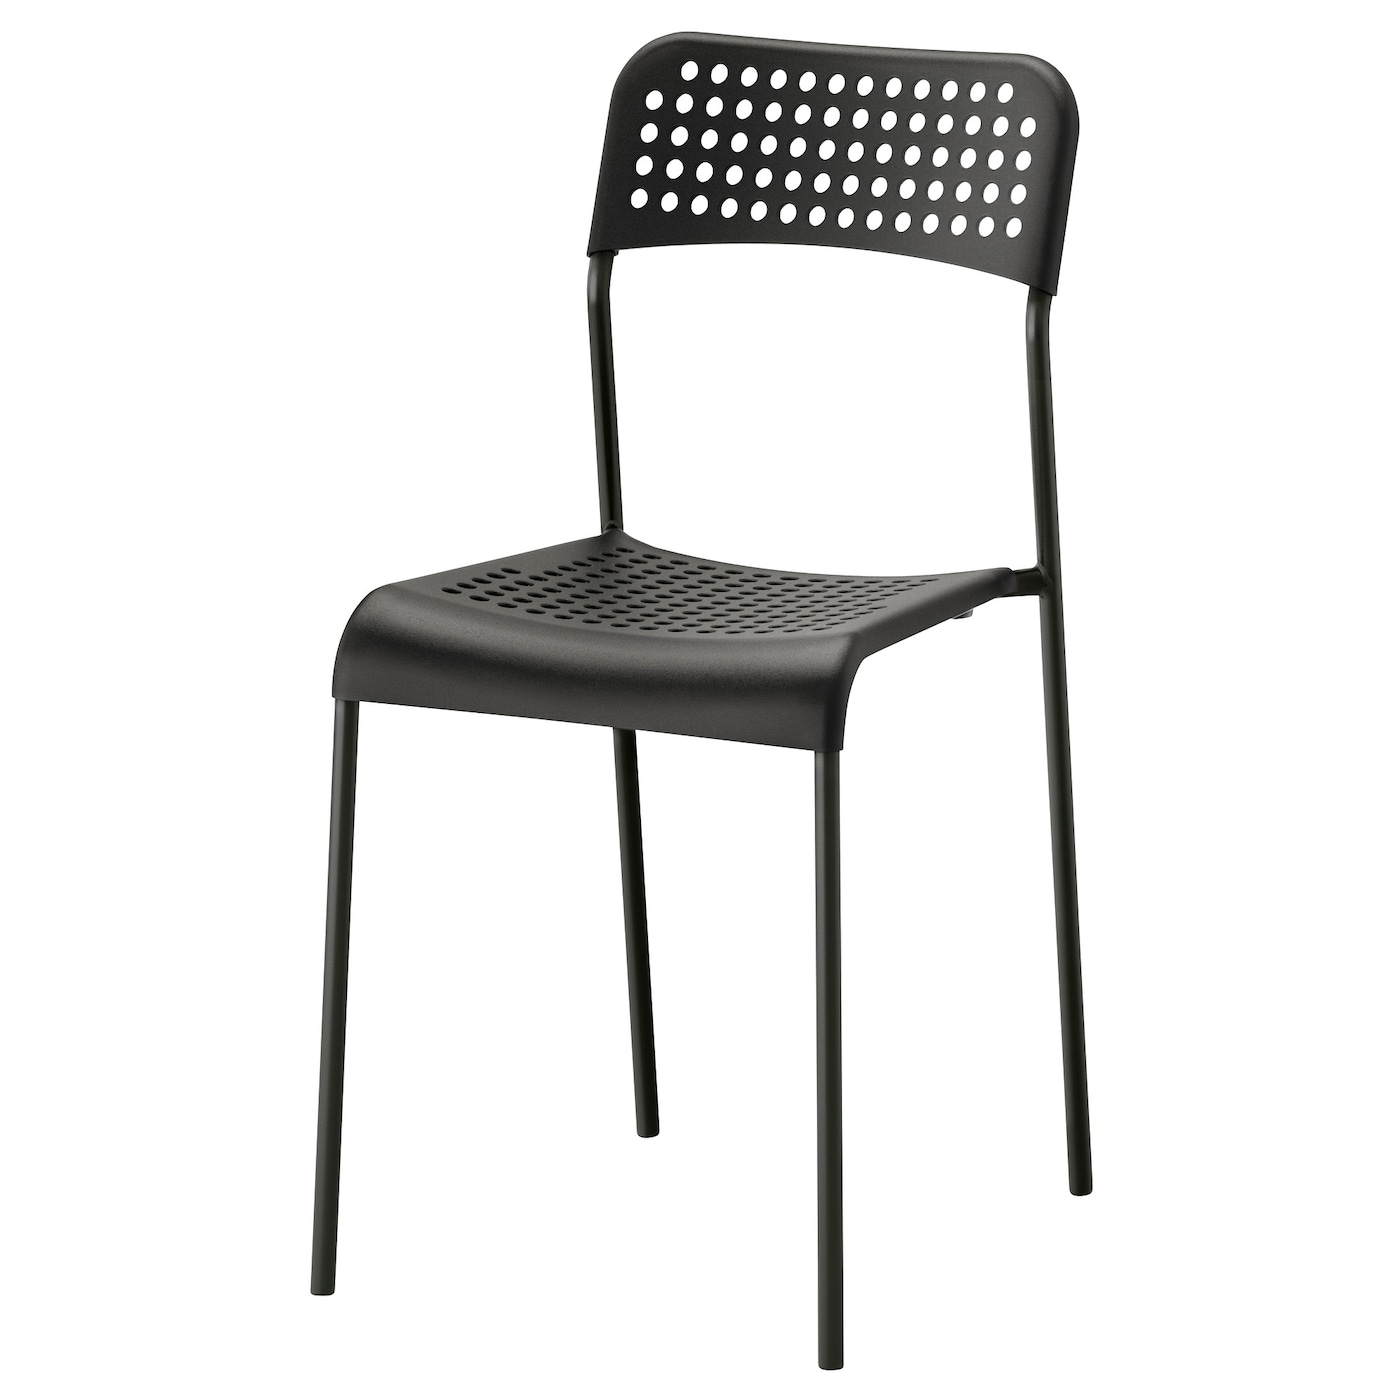 black furniture ikea. ikea adde chair you can stack the chairs so they take less space when black furniture ikea m